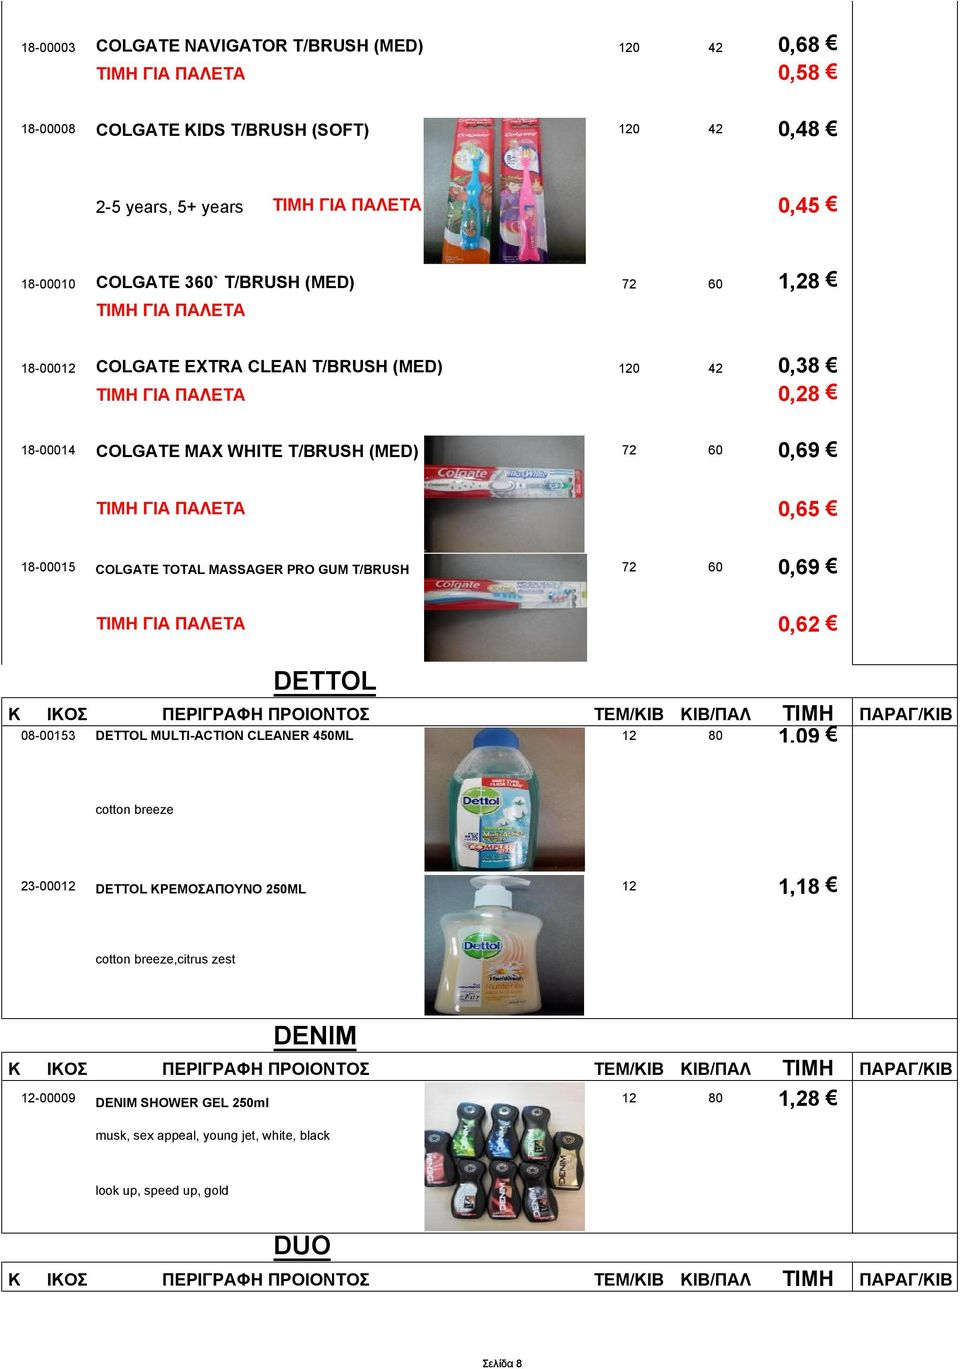 18-00015 COLGATE TOTAL MASSAGER PRO GUM T/BRUSH 0 0,9 0,2 ΓΙΑ ΠΑΛΕΤΑ DETTOL 08-00153 DETTOL MULTI-ACTION CLEANER 450ML 80 1,09 cotton breeze 23-000 1,18 DETTOL